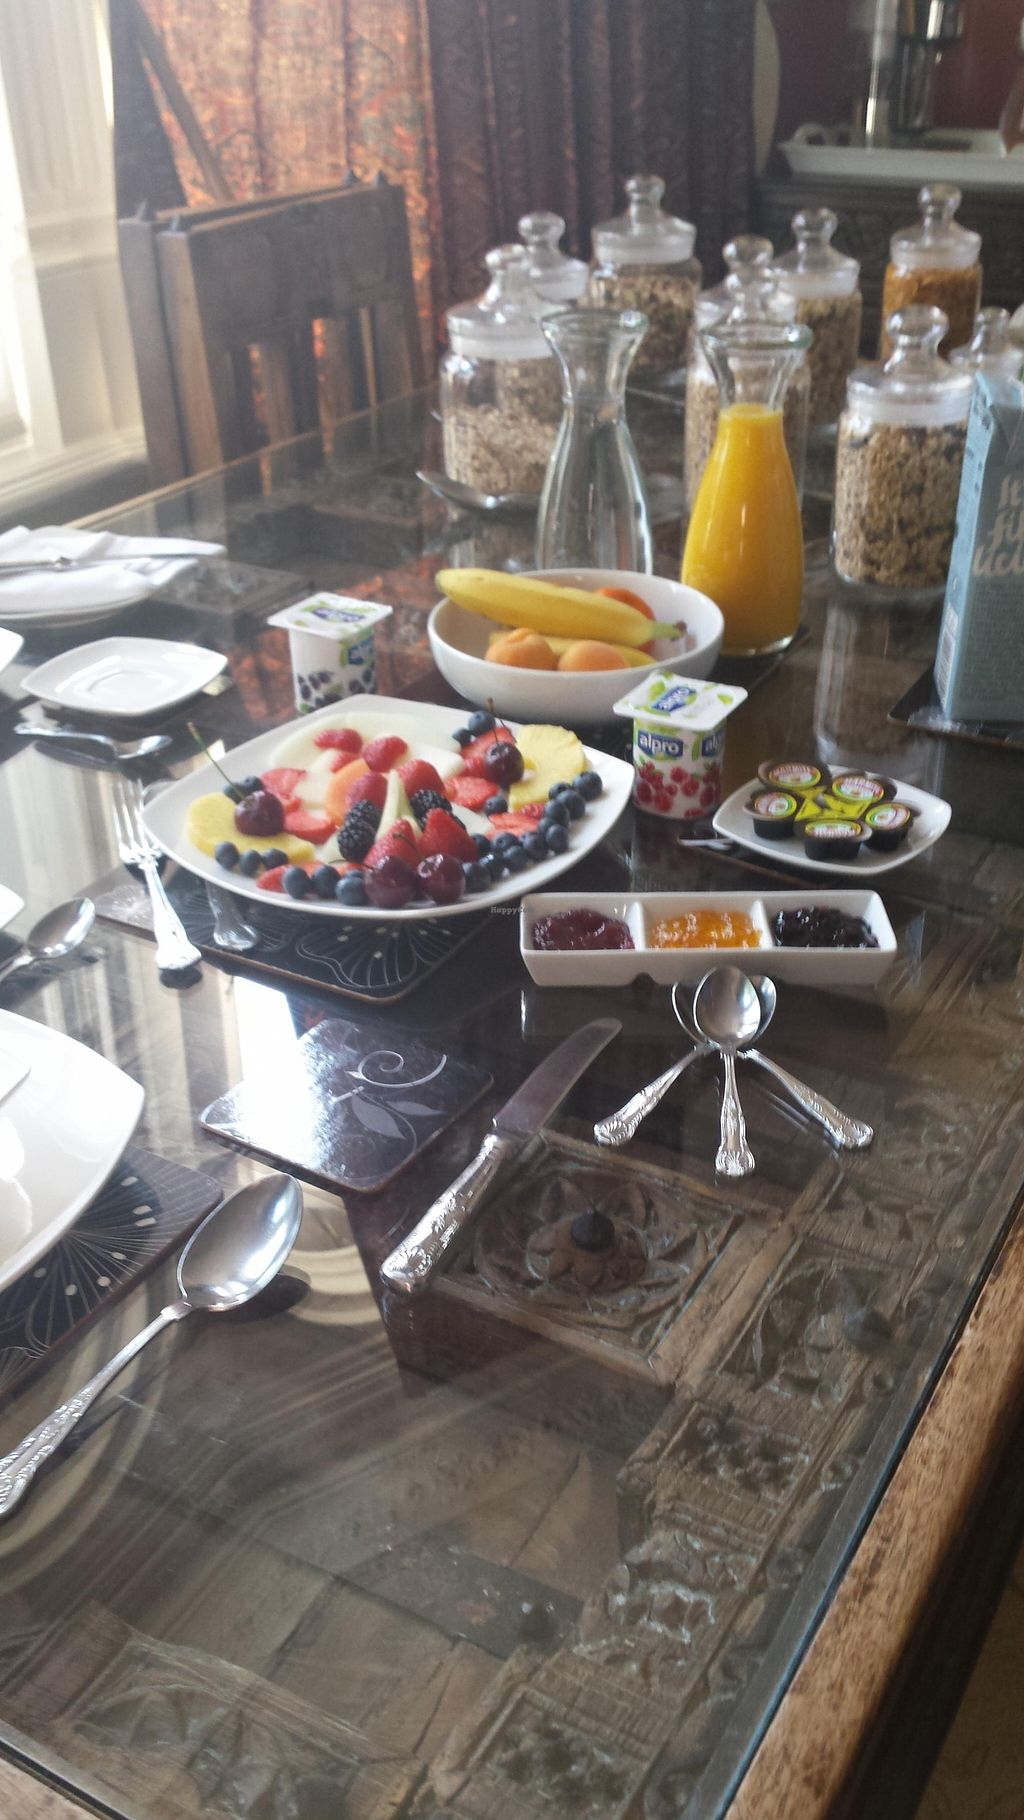 """Photo of BayTree House  by <a href=""""/members/profile/Good%20for%20Vegans"""">Good for Vegans</a> <br/>Breakfast <br/> August 28, 2015  - <a href='/contact/abuse/image/25946/115463'>Report</a>"""